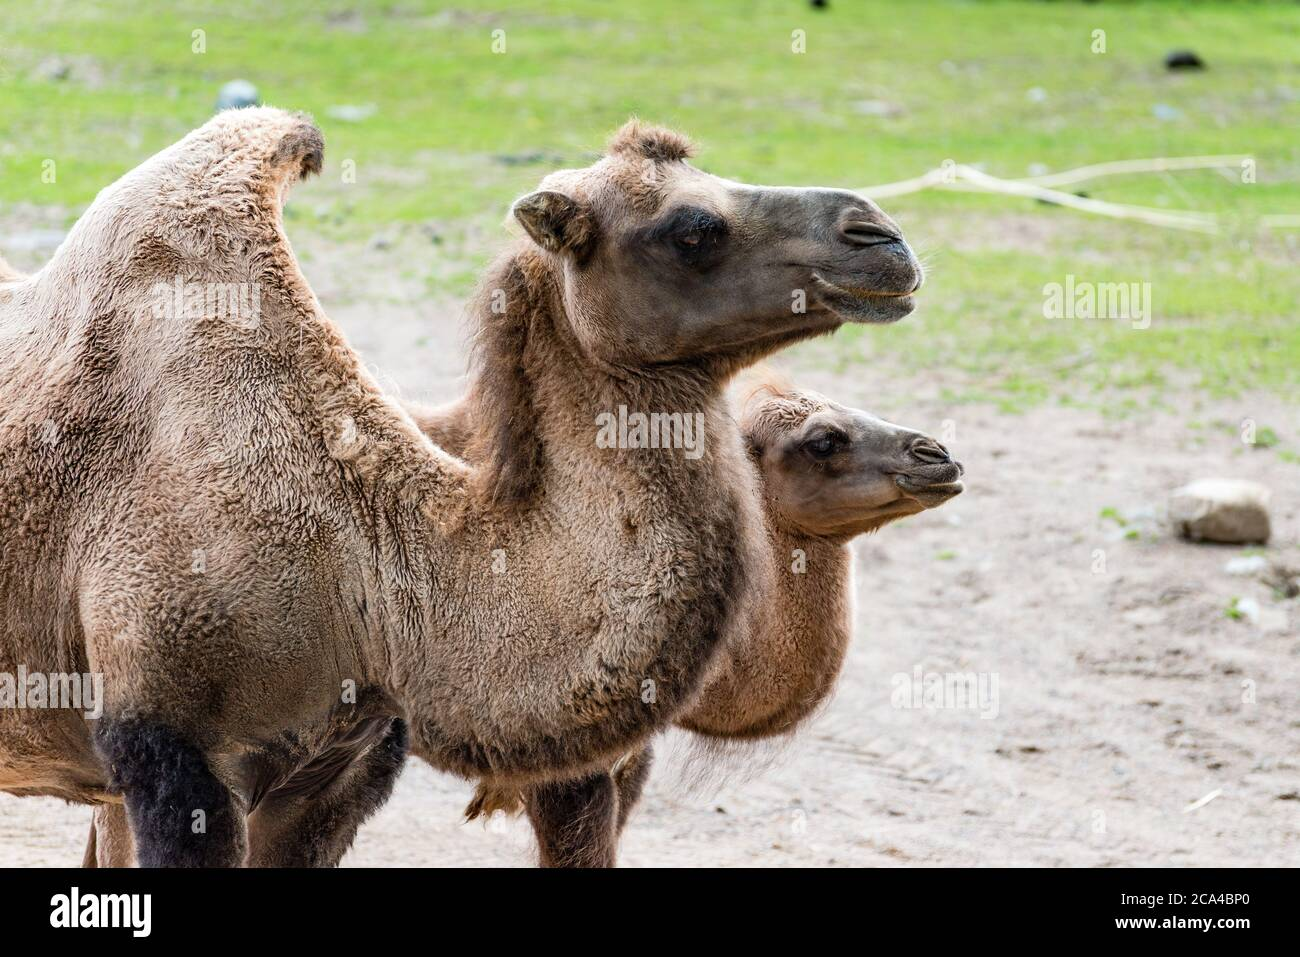 "A camel is an even-toed ungulate in the genus Camelus that bears distinctive fatty deposits known as ""humps"" on its back. Stock Photo"